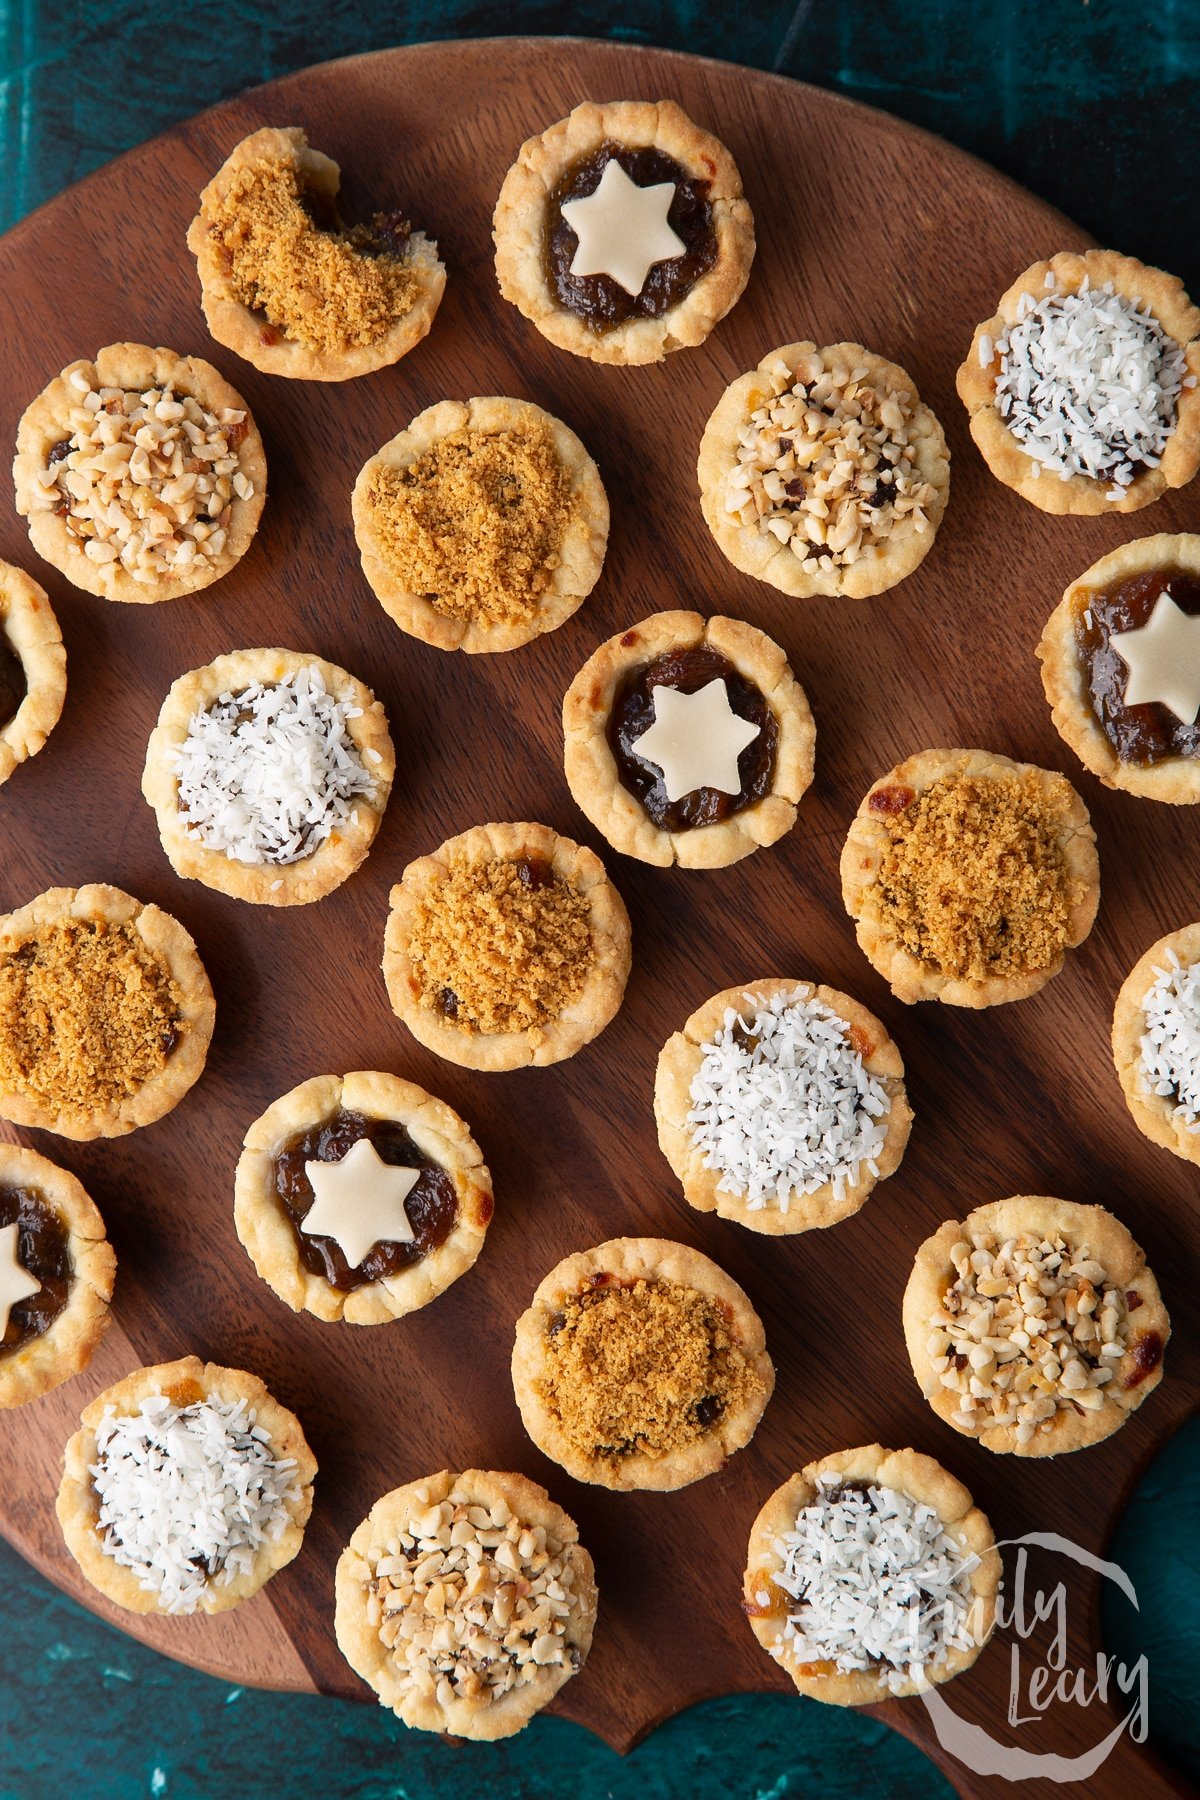 Mini mince pies, shown from above on a dark wooden board.